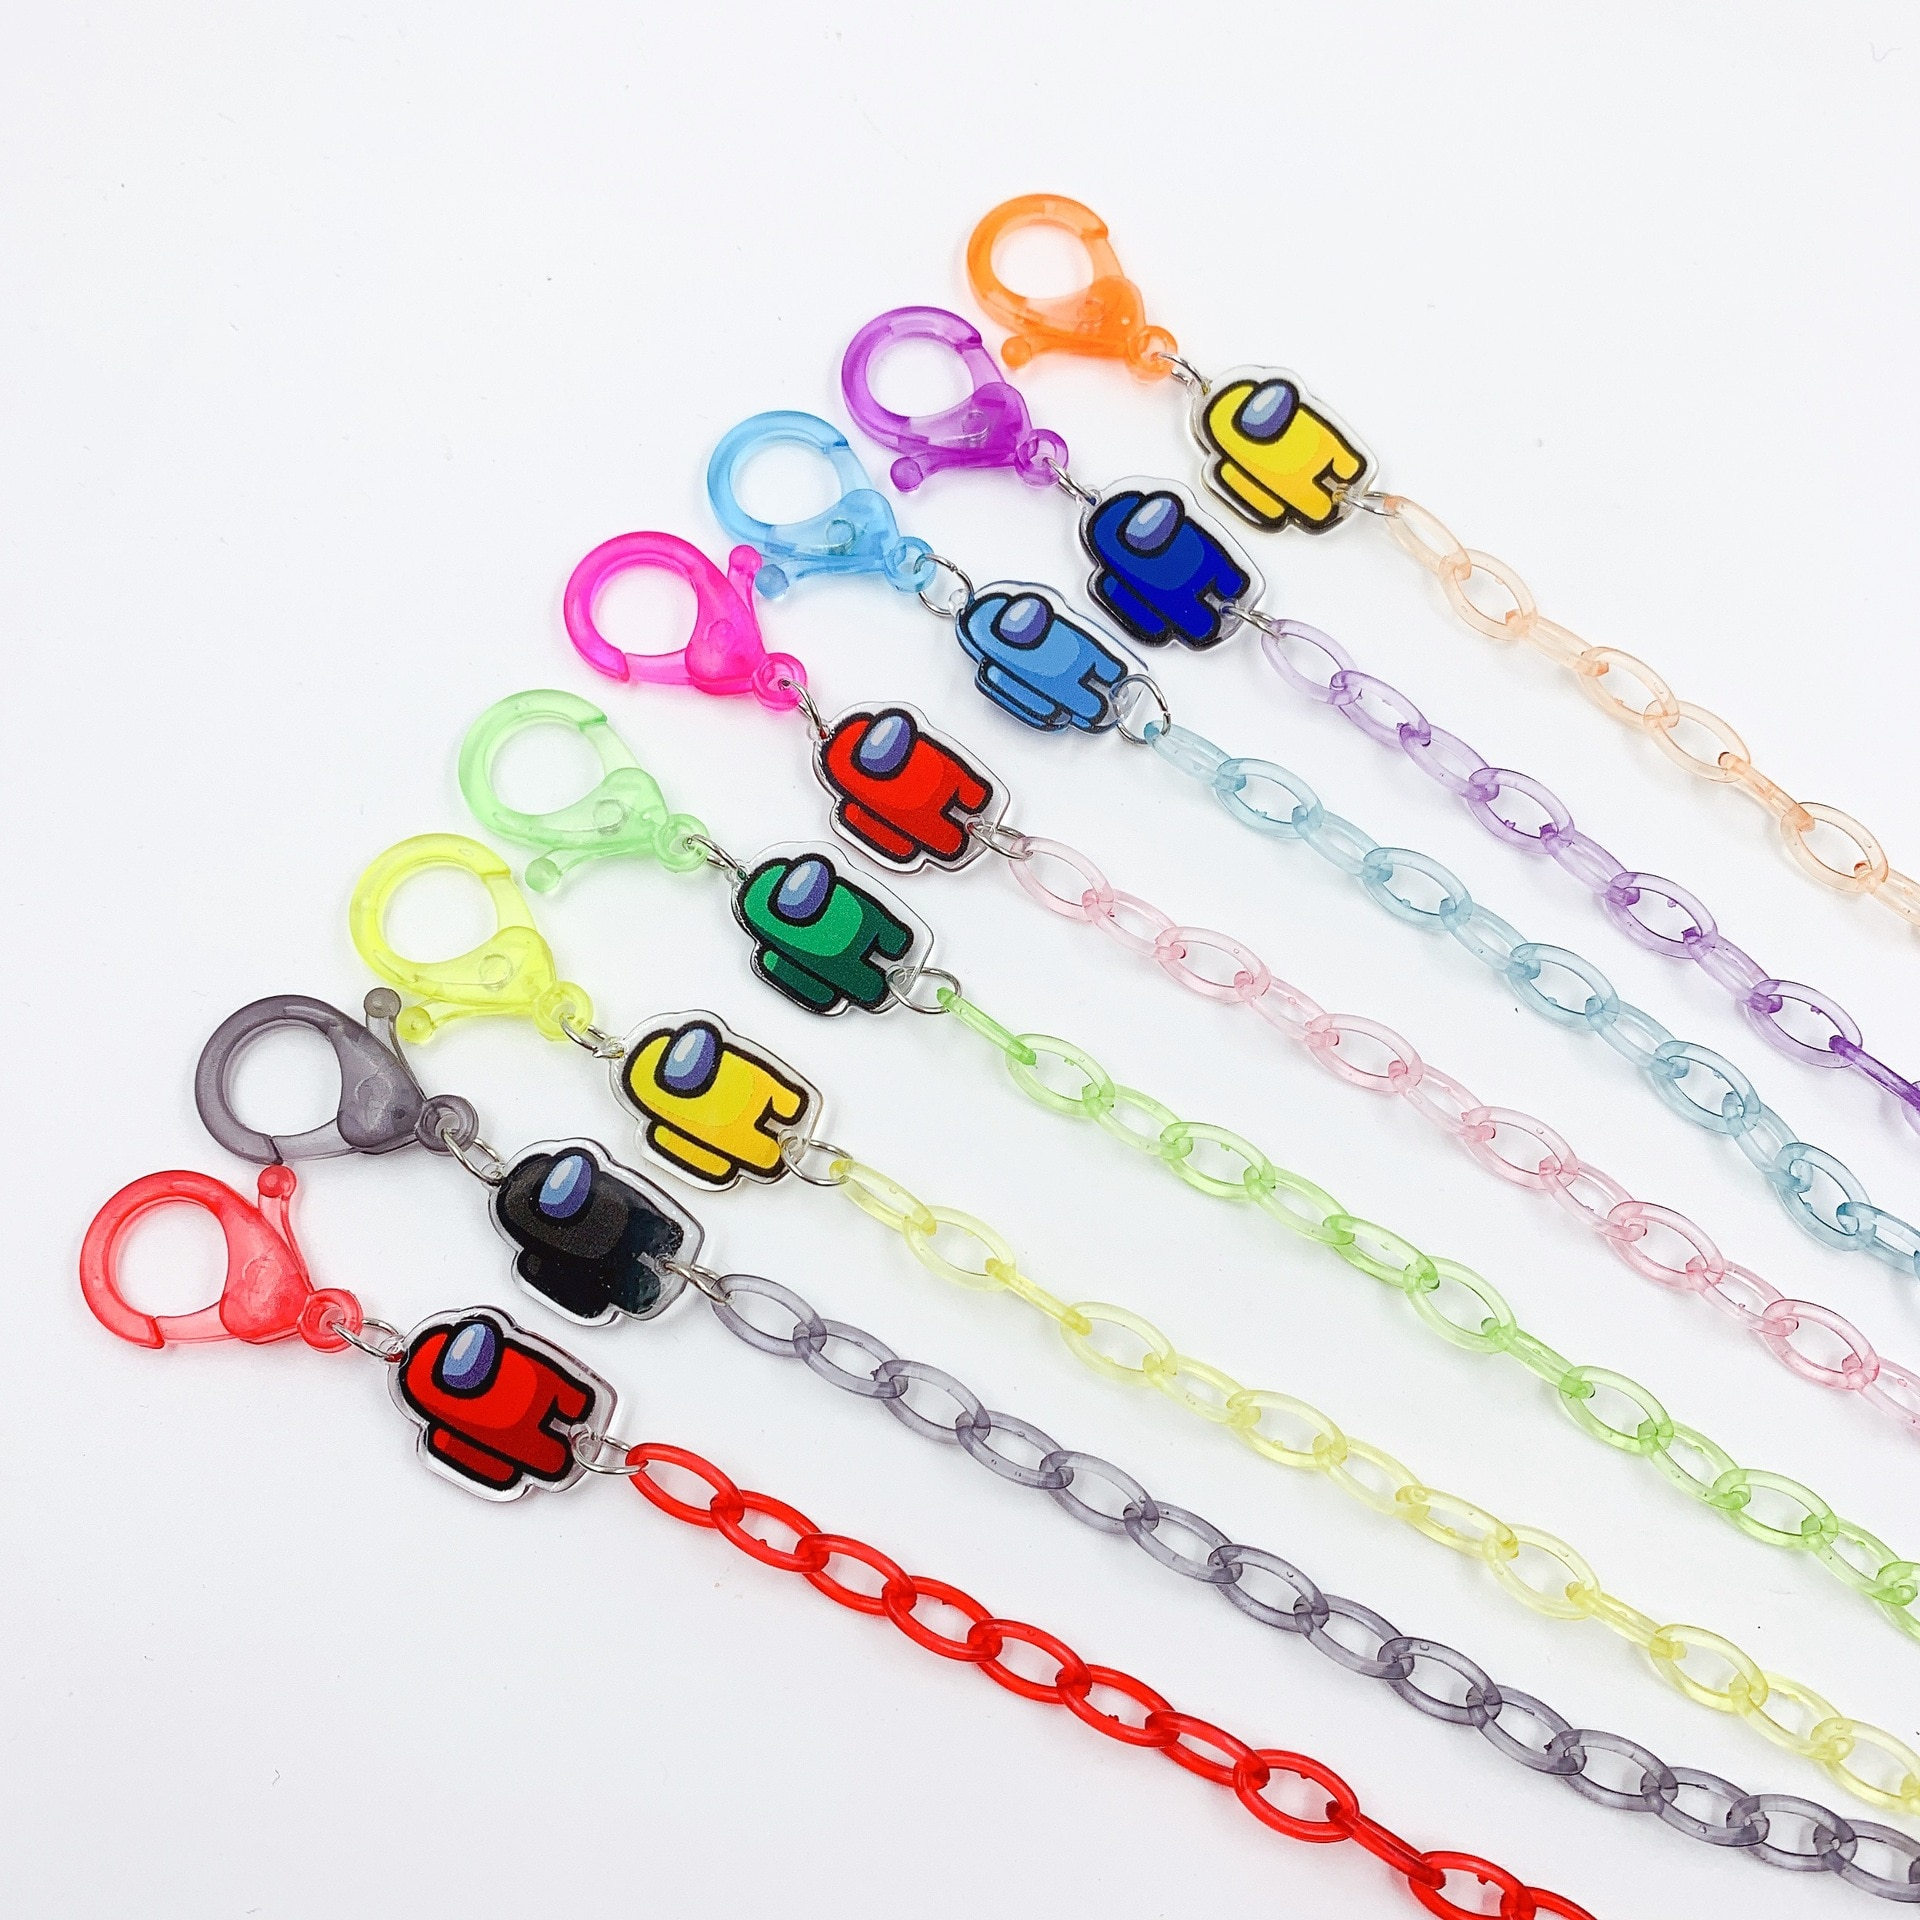 10 Pieces One Pack Cartoon Candy Color Game Transparent Color Among-us Mask Chain Glasses Chain Anti-lost Lanyard 60cm